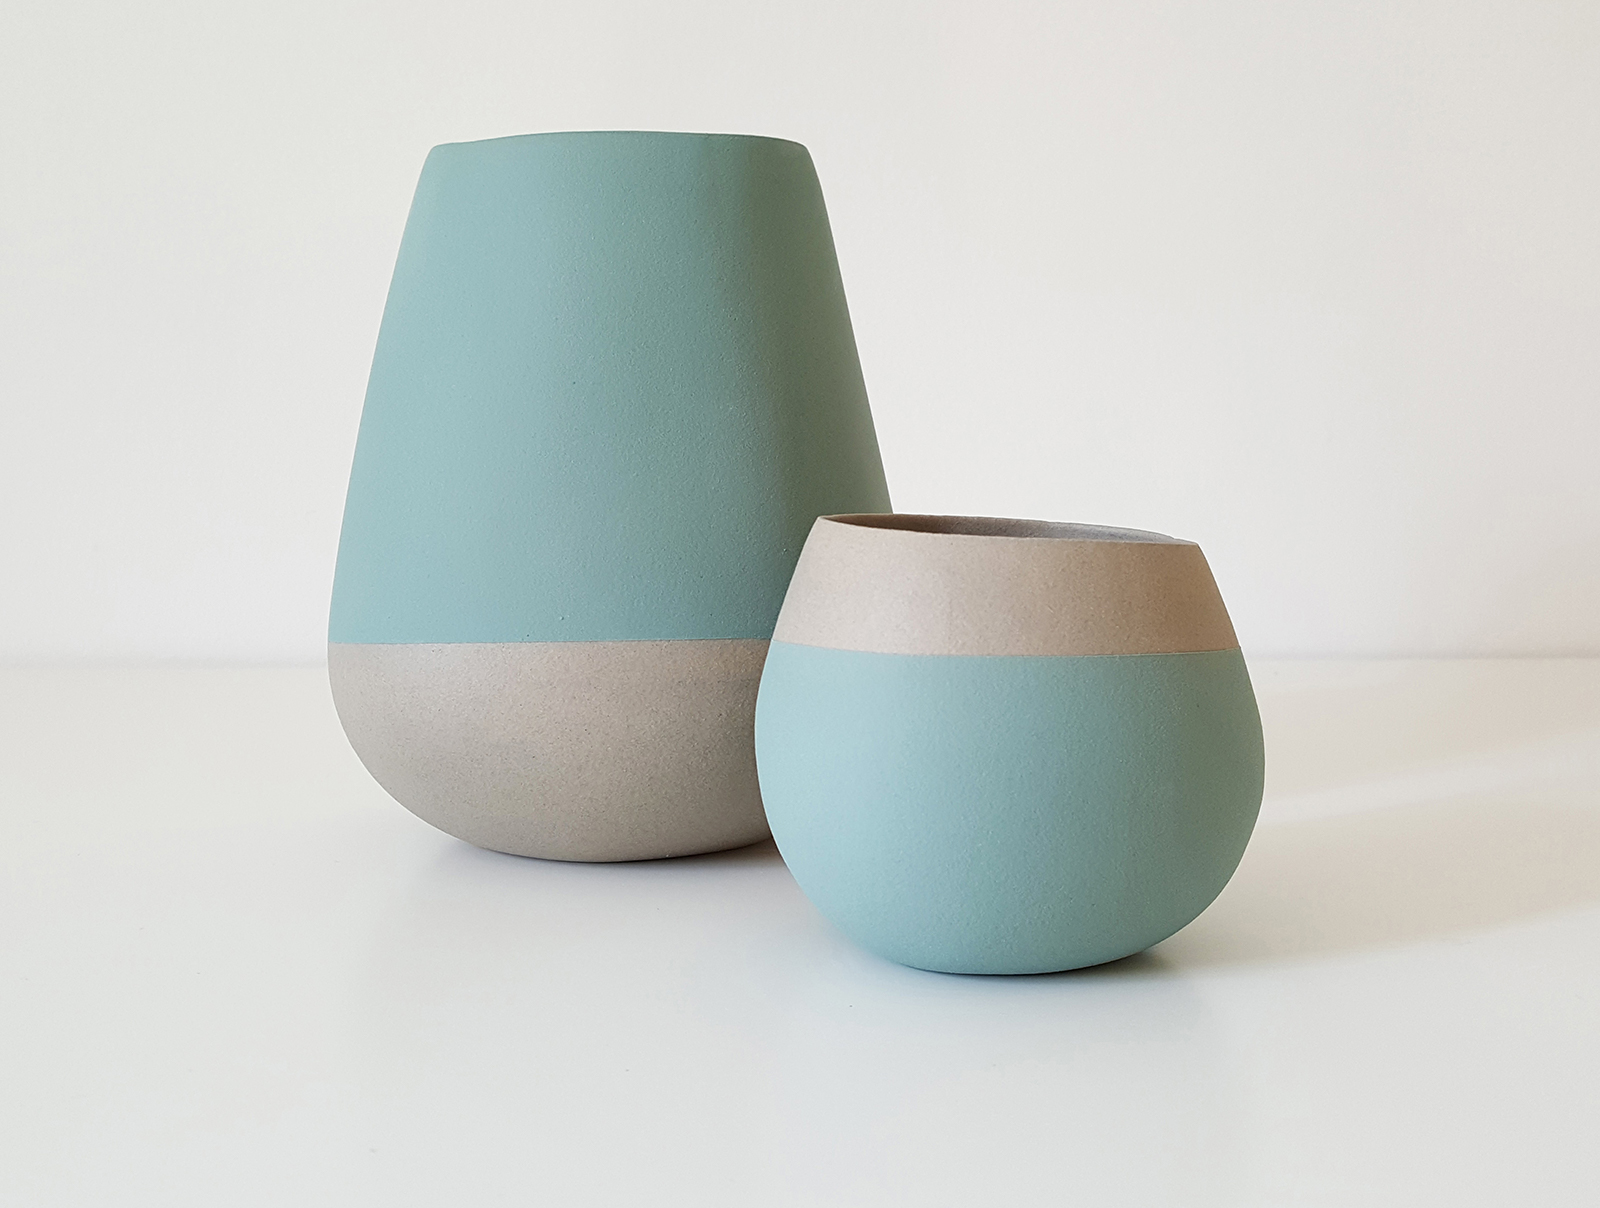 Open vessel forms - teal and grey - tallest approx 15cm